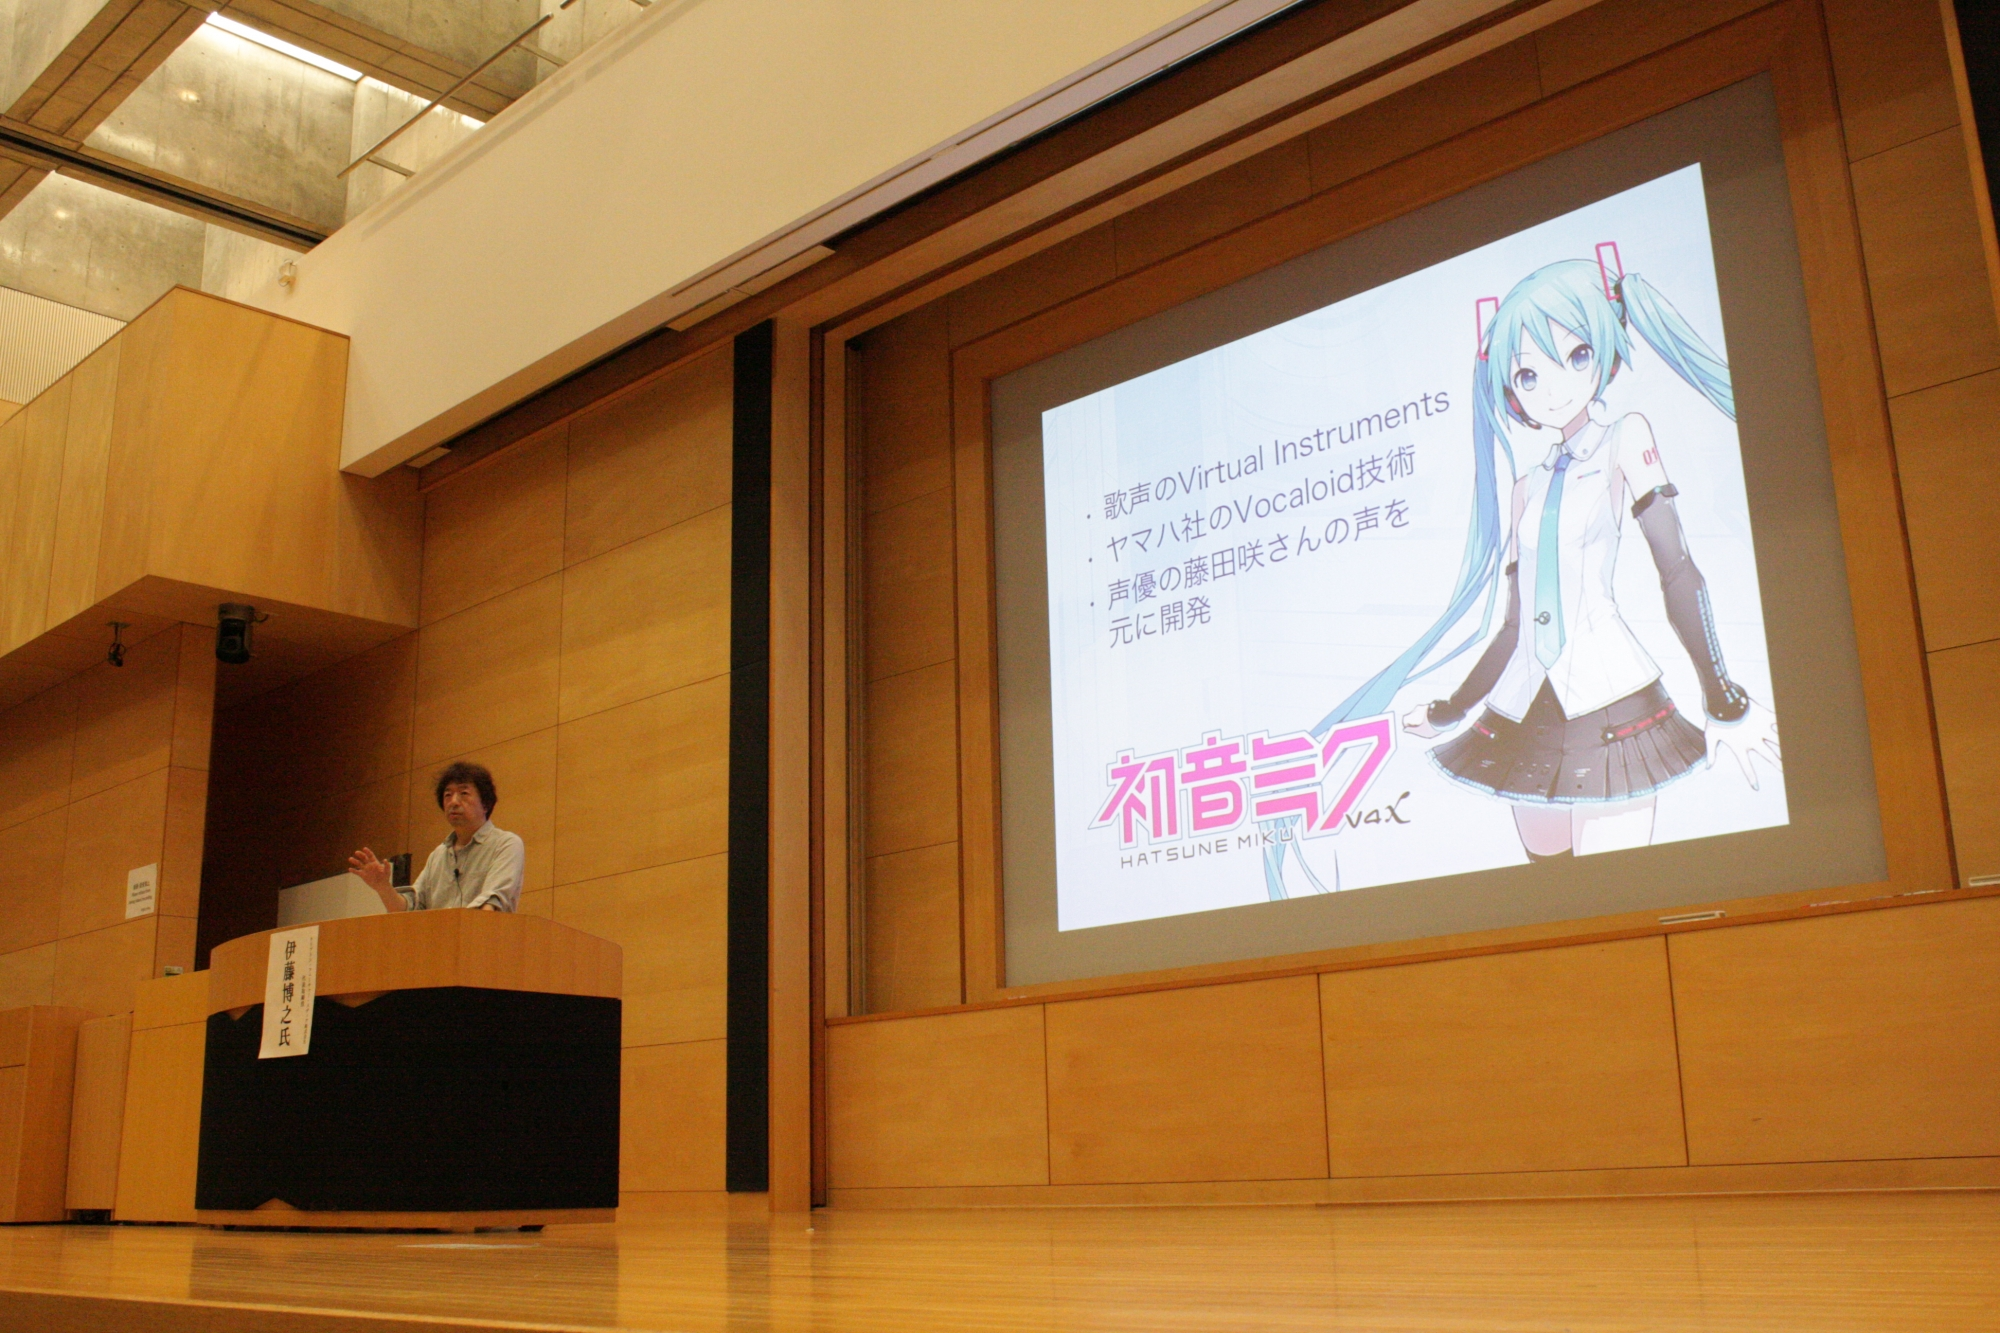 Everyone can become a creator with Hatsune Miku